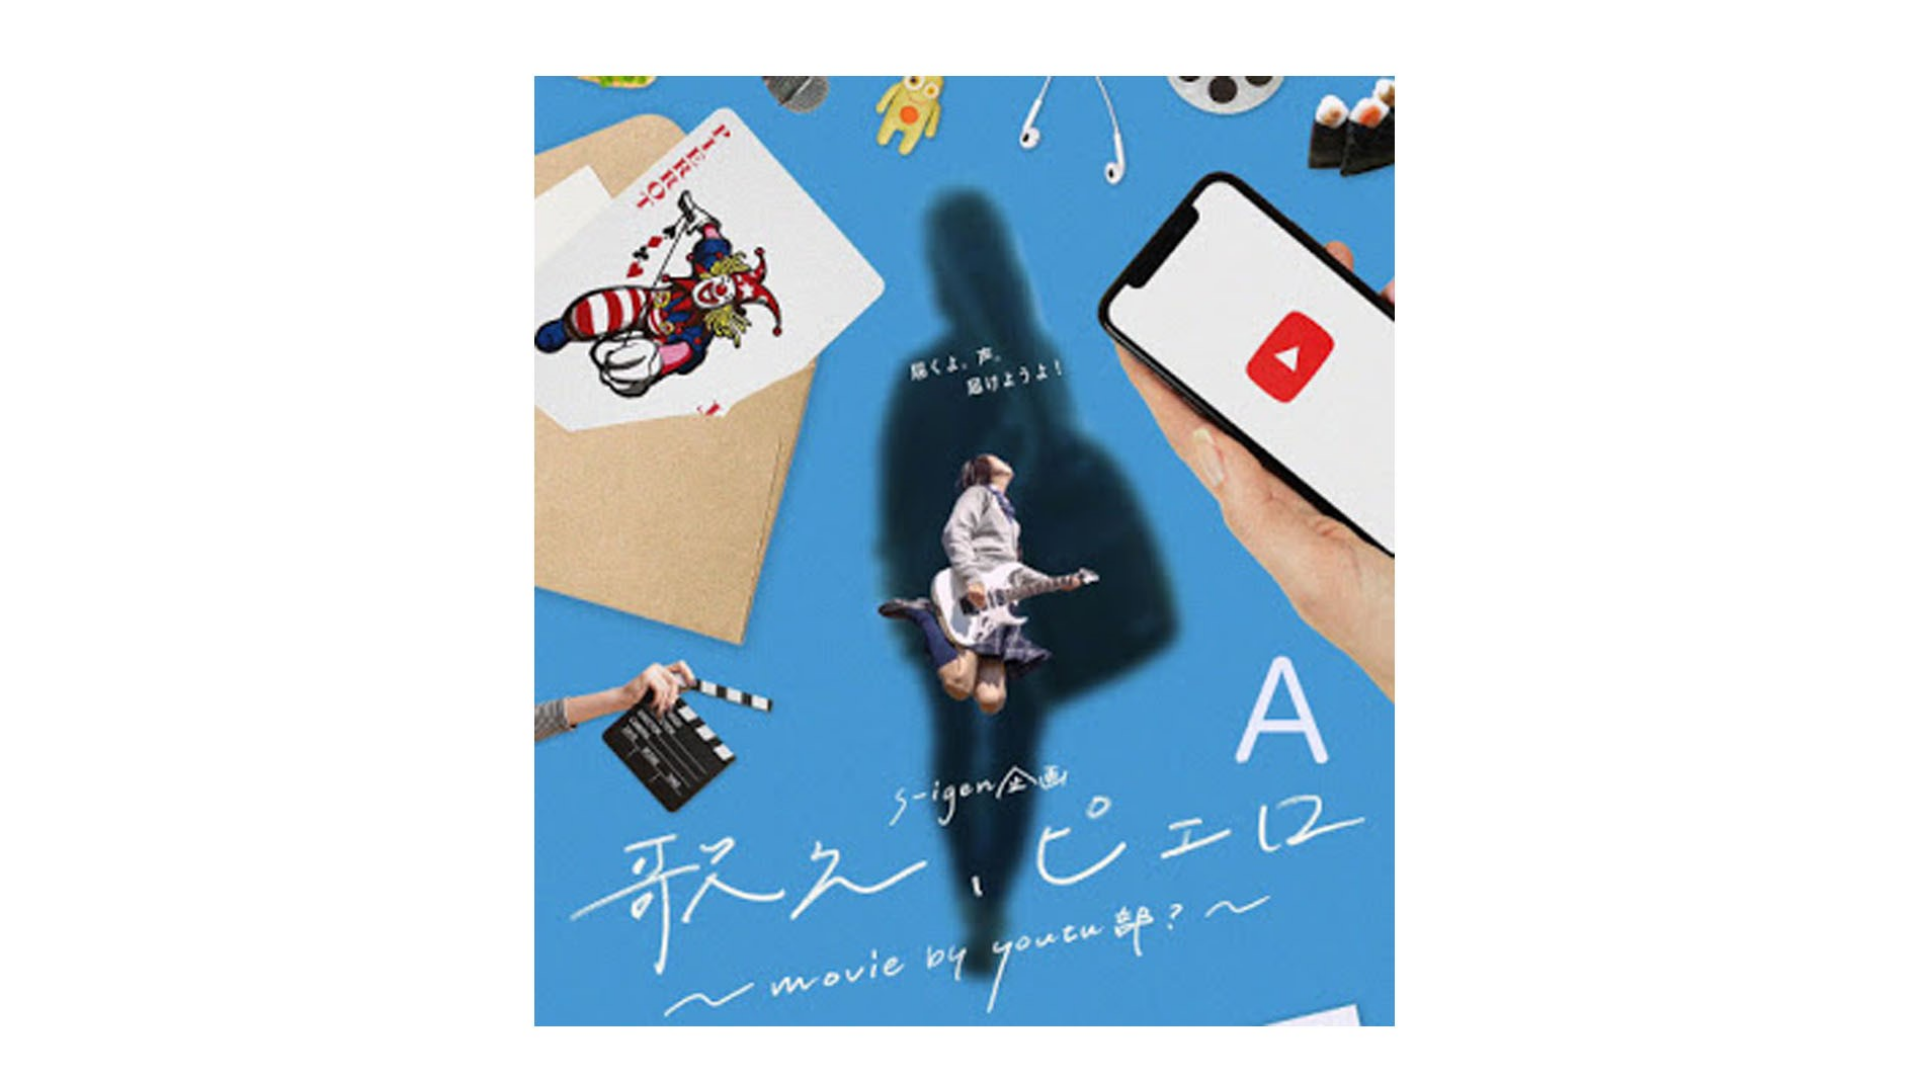 S-igen企画旗揚げ公演「歌え、ピエロ~movie by youtu部~」Aキャスト